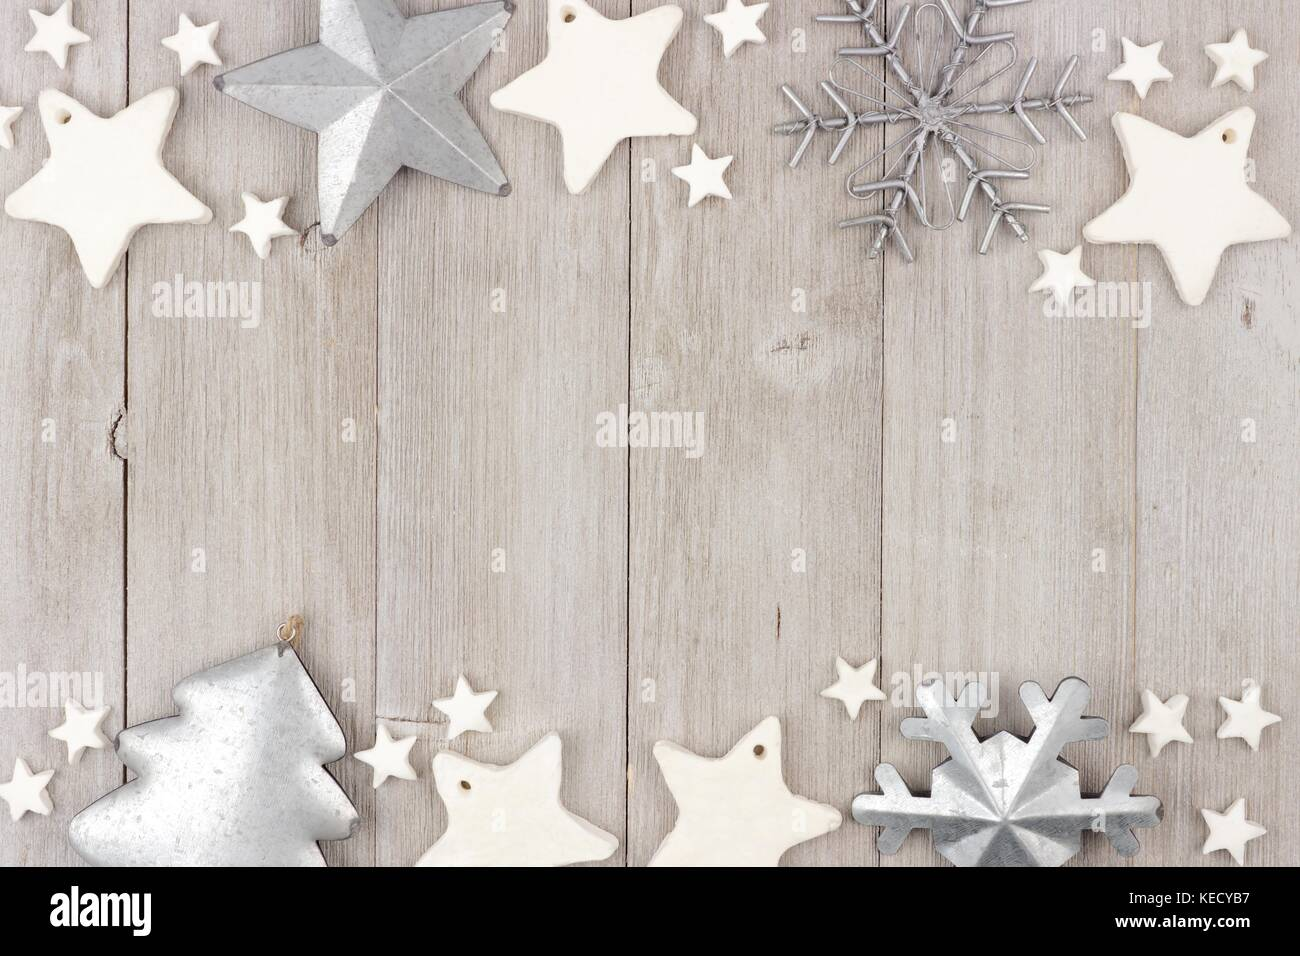 Christmas Double Border With Shabby Chic Handmade Clay And Metal Ornaments On A Rustic Wood Background